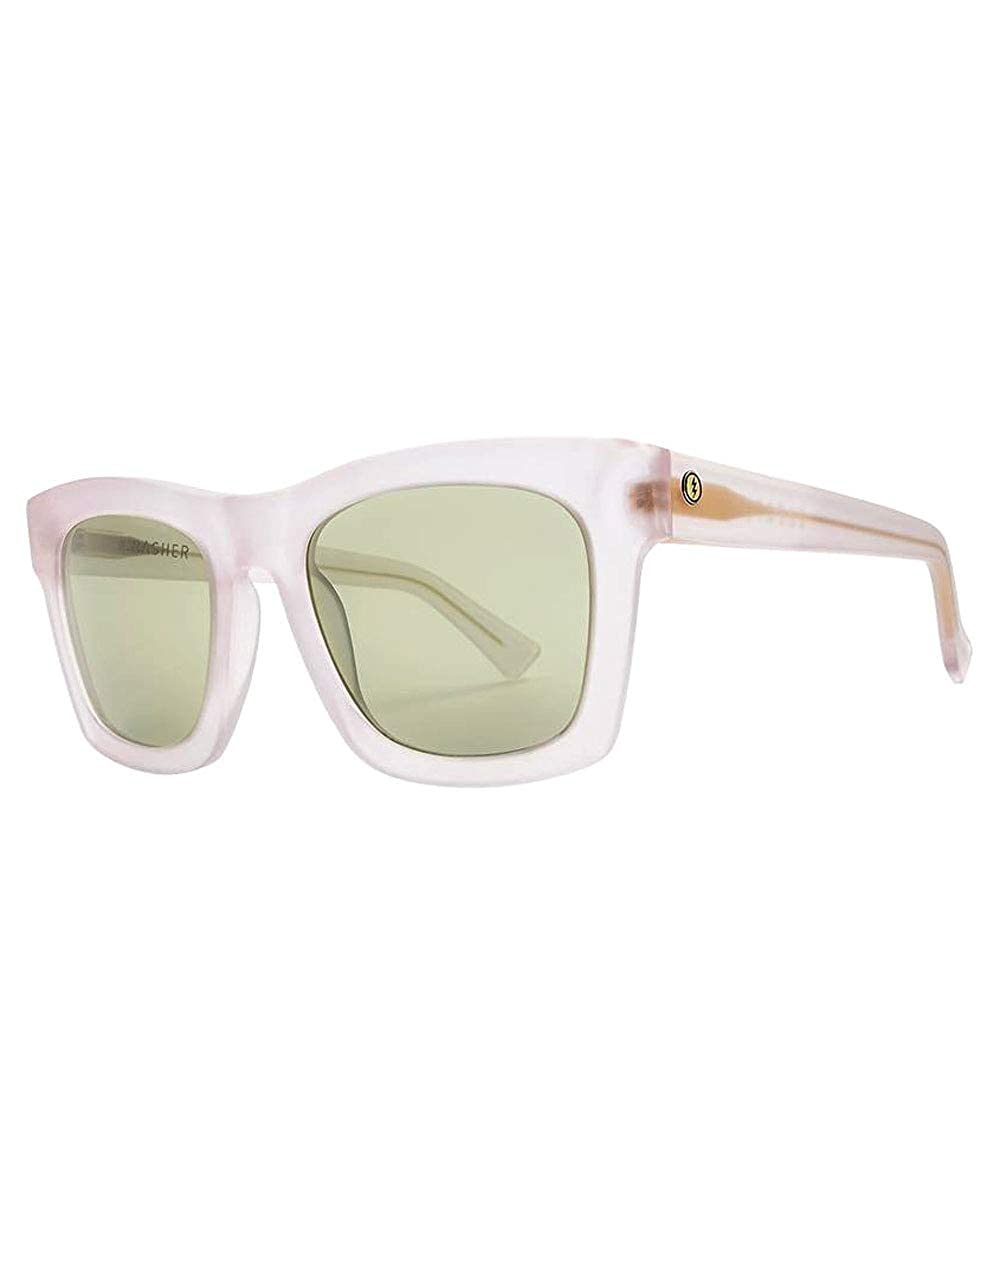 ELECTRIC Crasher - Gafas de sol, color rosa mate: Amazon.es ...